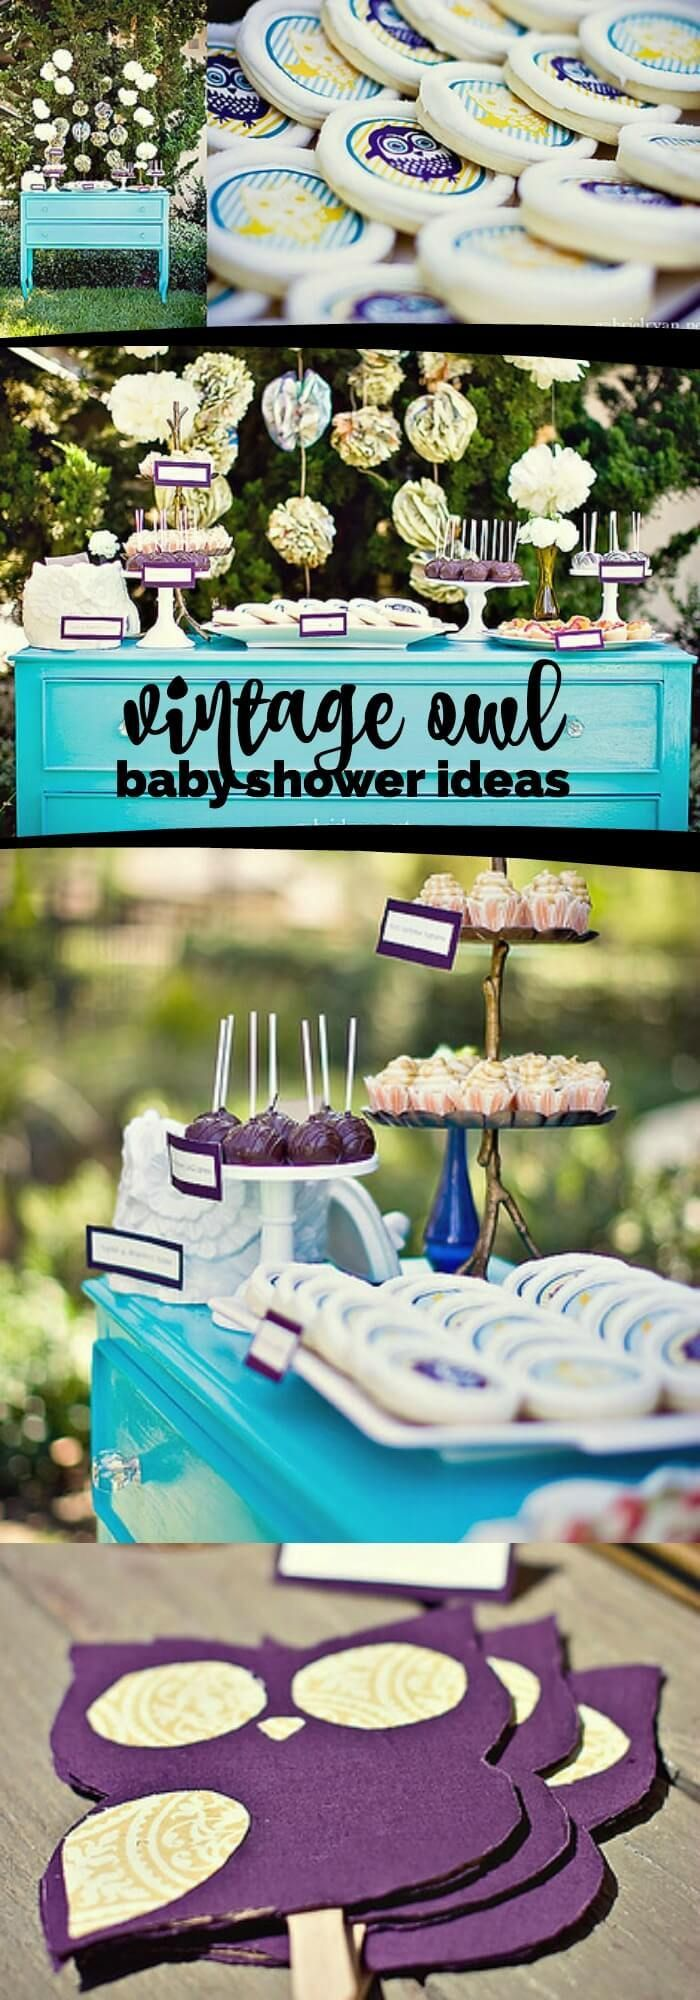 Hosting a baby shower and need some food ideas look no further since - Vintage Owl Themed Boy S Baby Shower